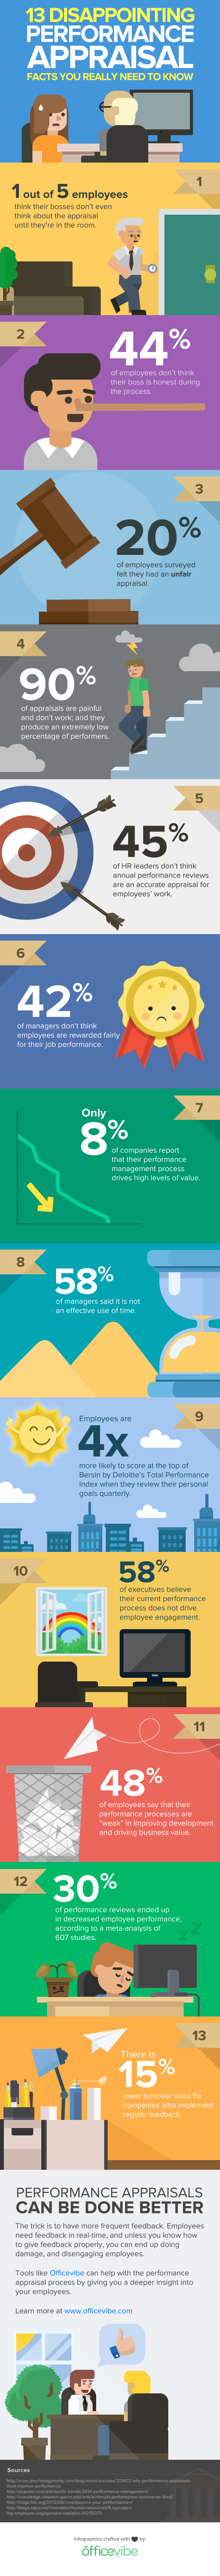 13 Disappointing Performance Appraisals Facts You Really Need To Know (Infographic)